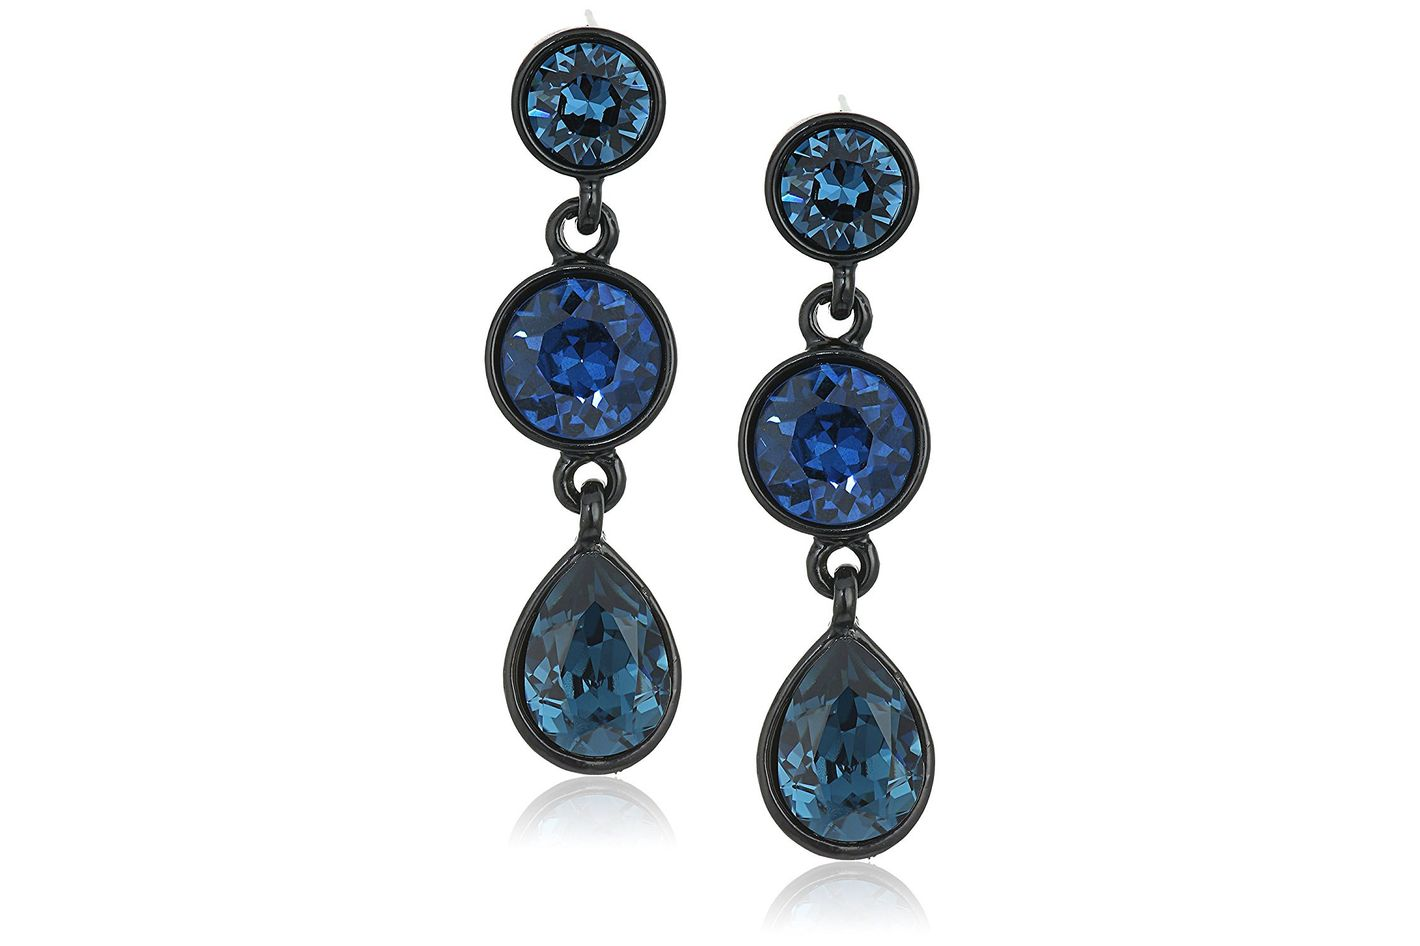 Kenneth Jay Lane 3 drop post earrings